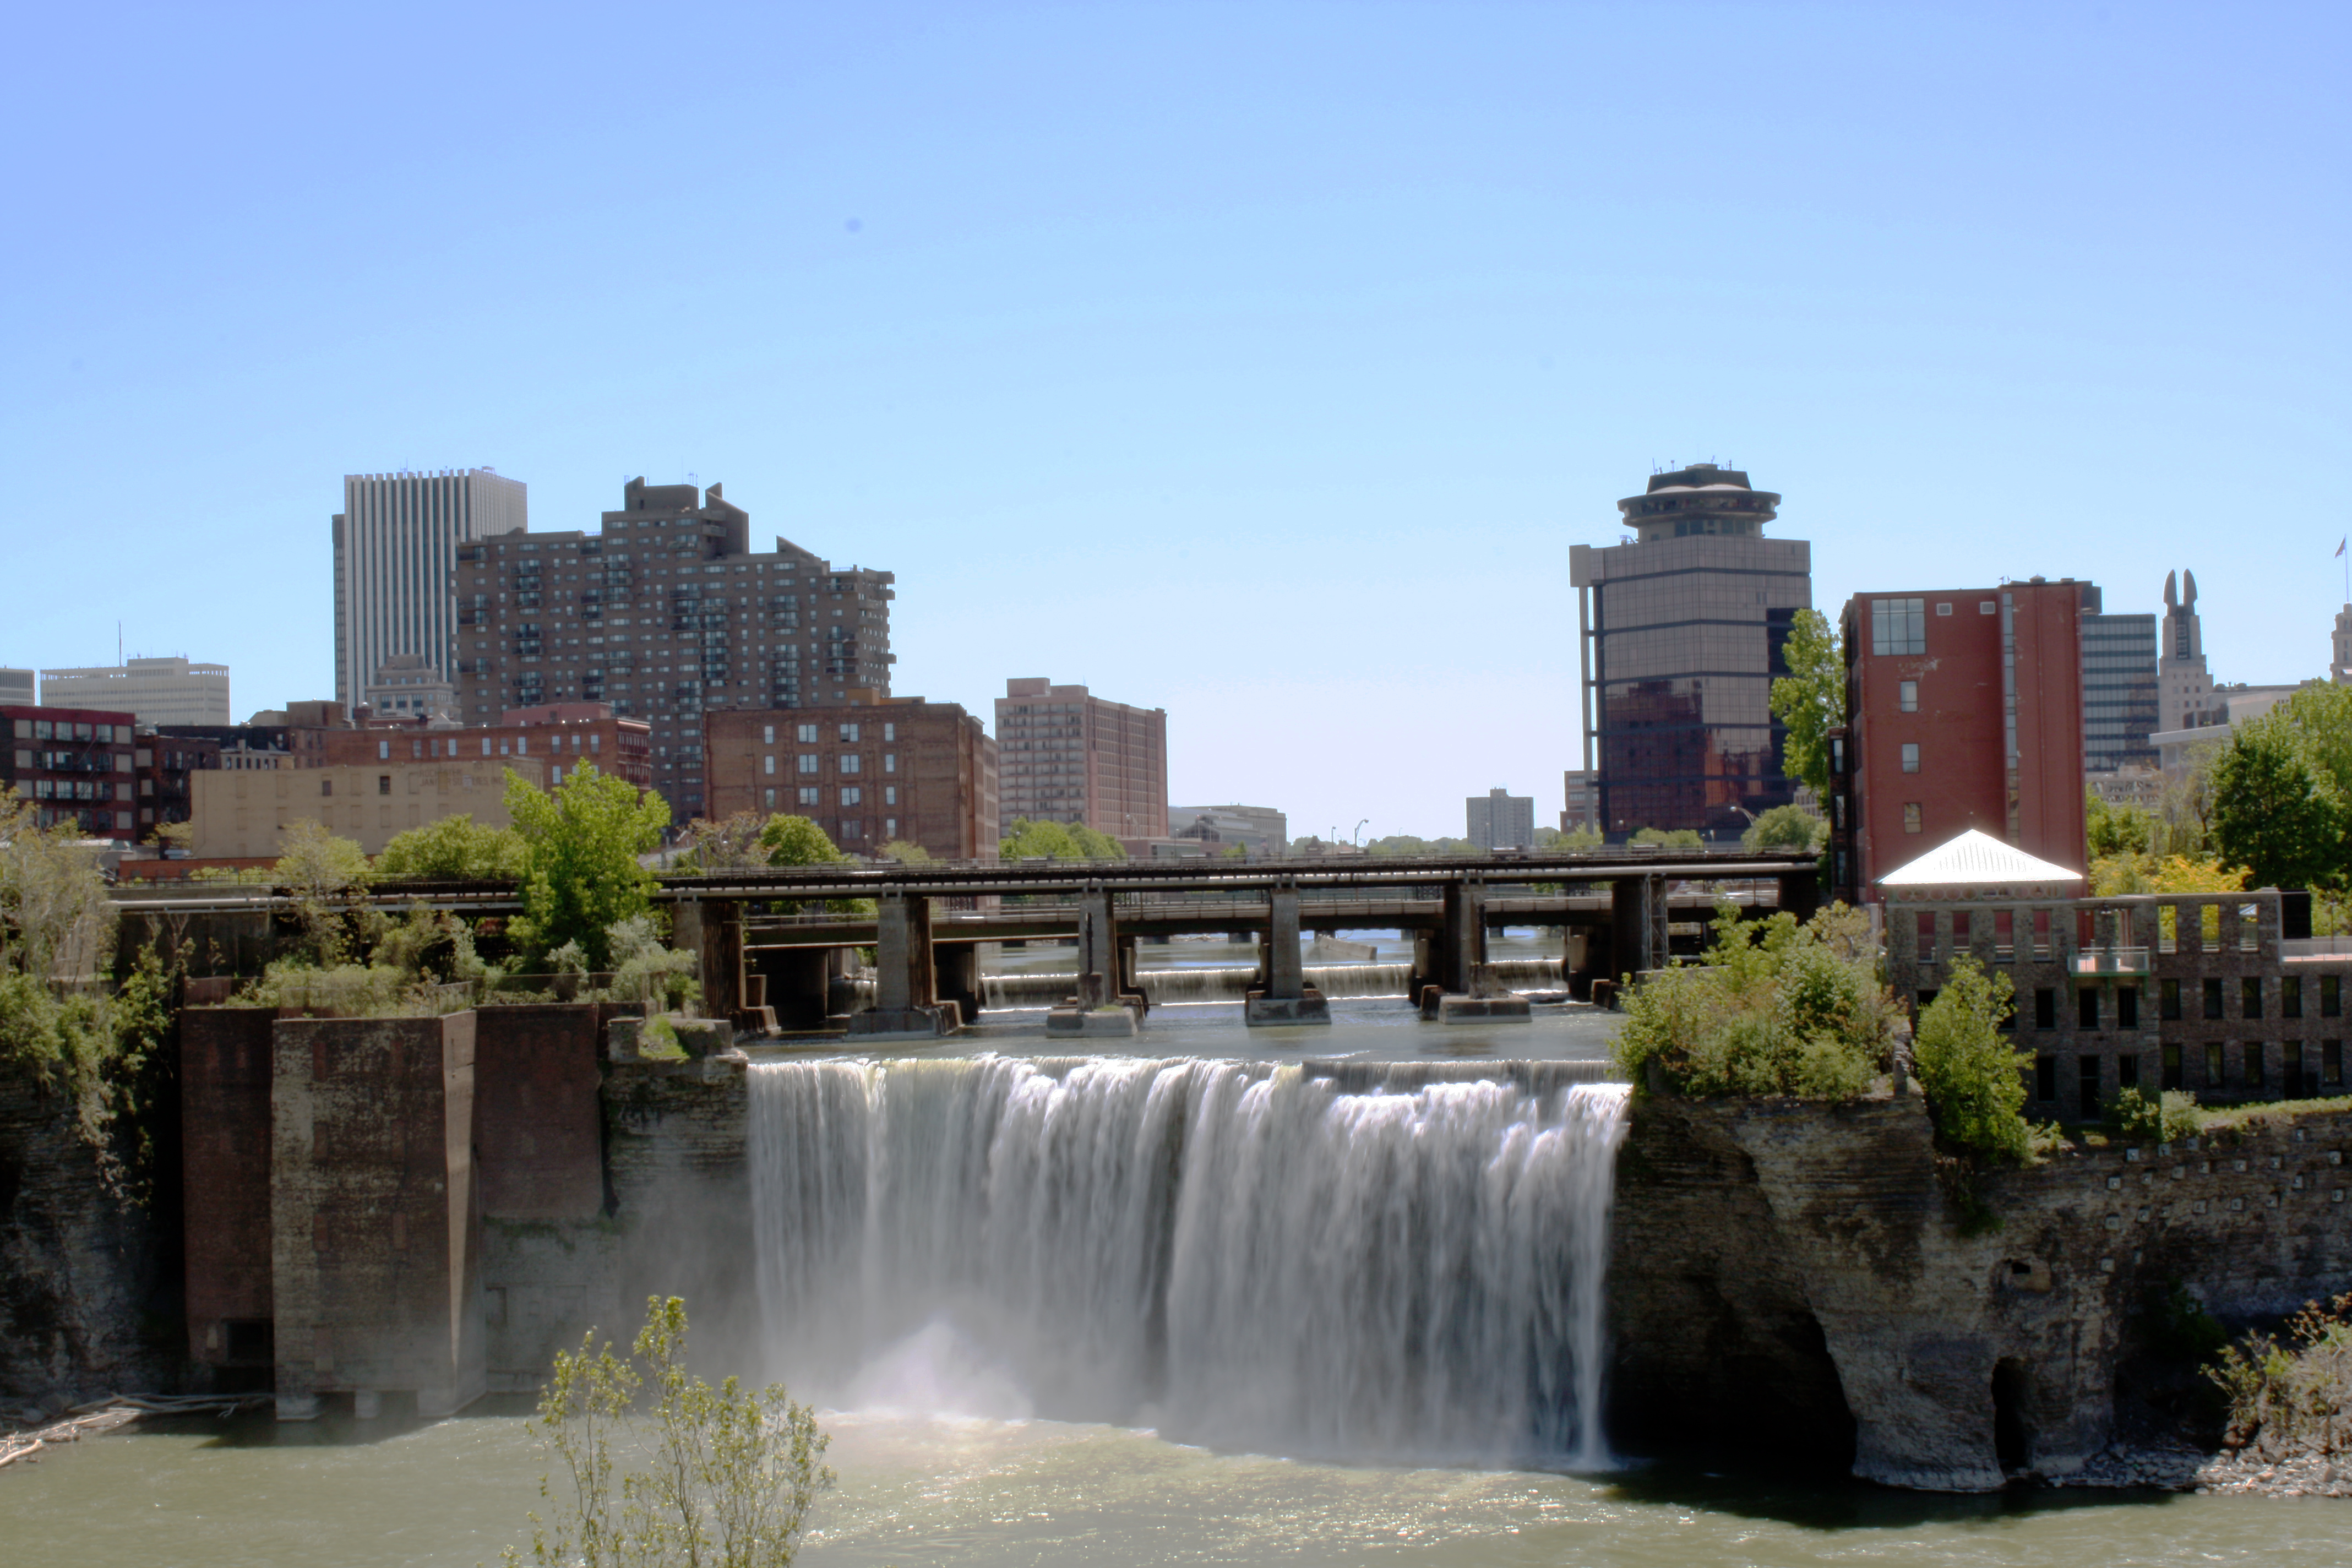 rochester falls york weather file ny hottest historic temperature genesee days commons united district race tour states wikimedia population brown